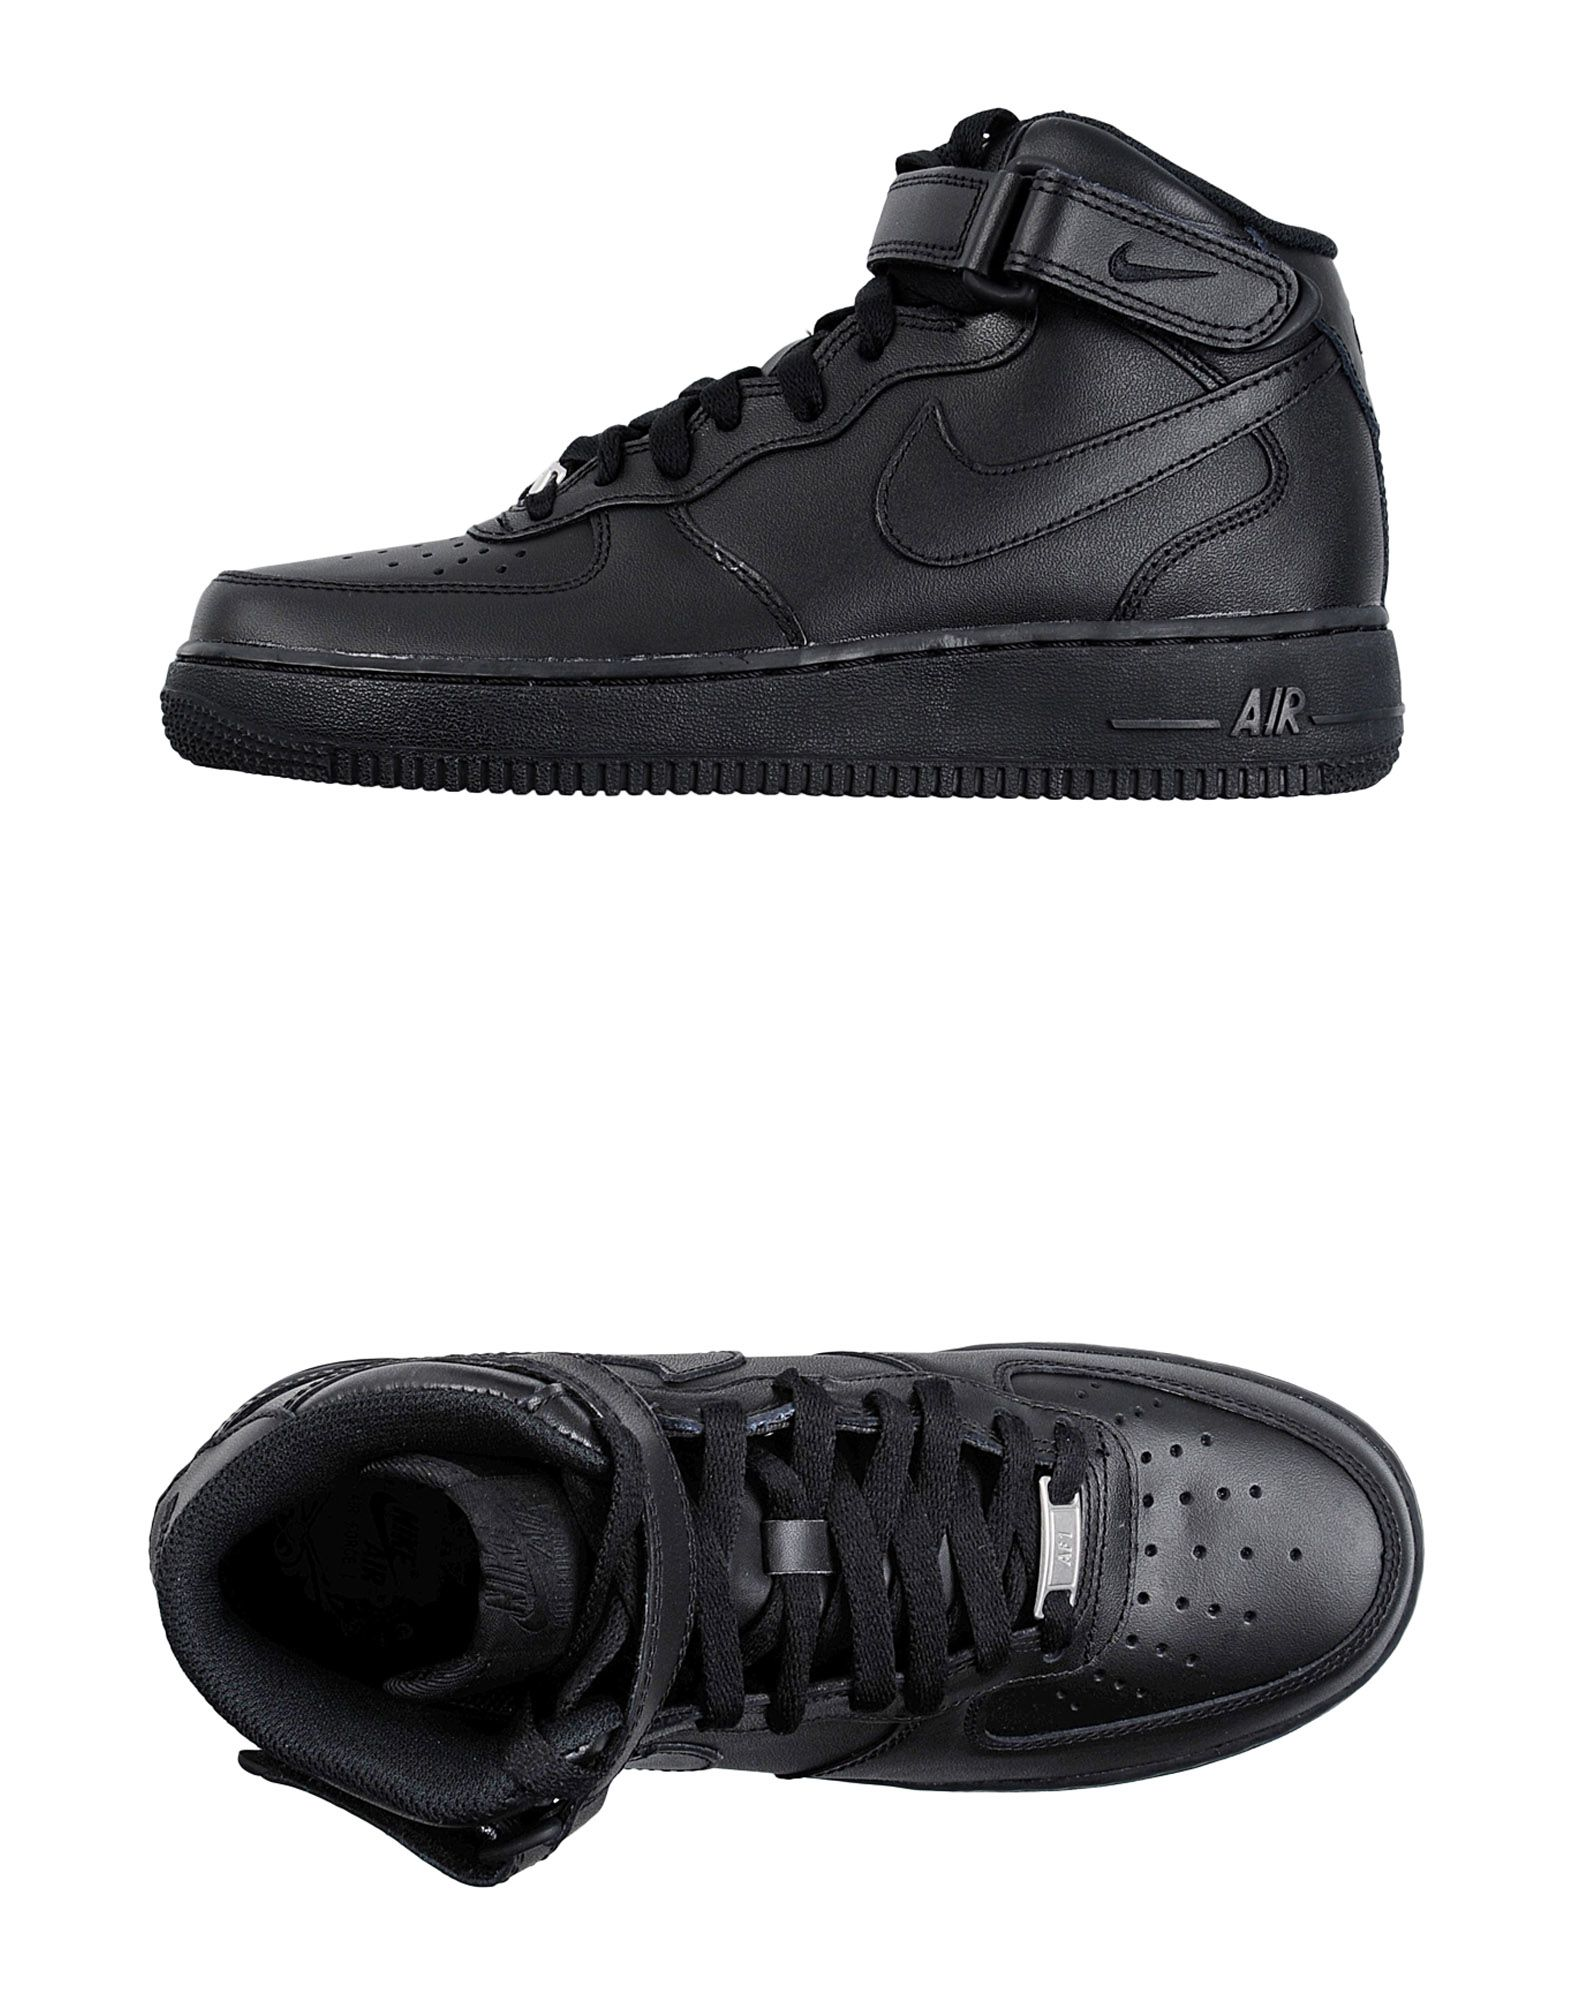 Sneakers Nike Air Force 1 Mid 07 Leather - Femme - Sneakers Nike sur